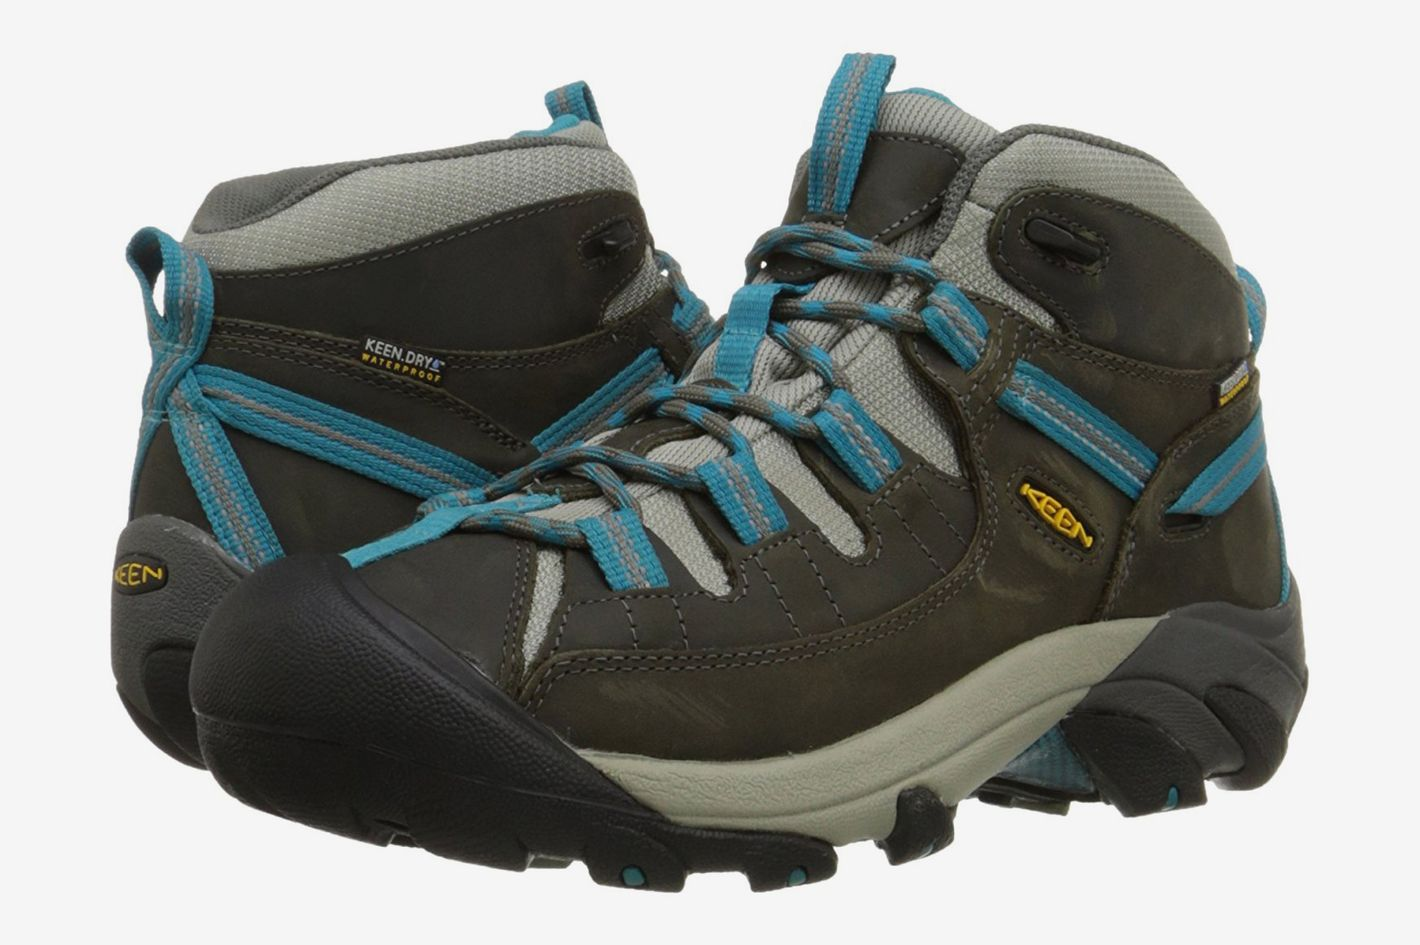 keen Best women's hiking boots that don't need breaking in